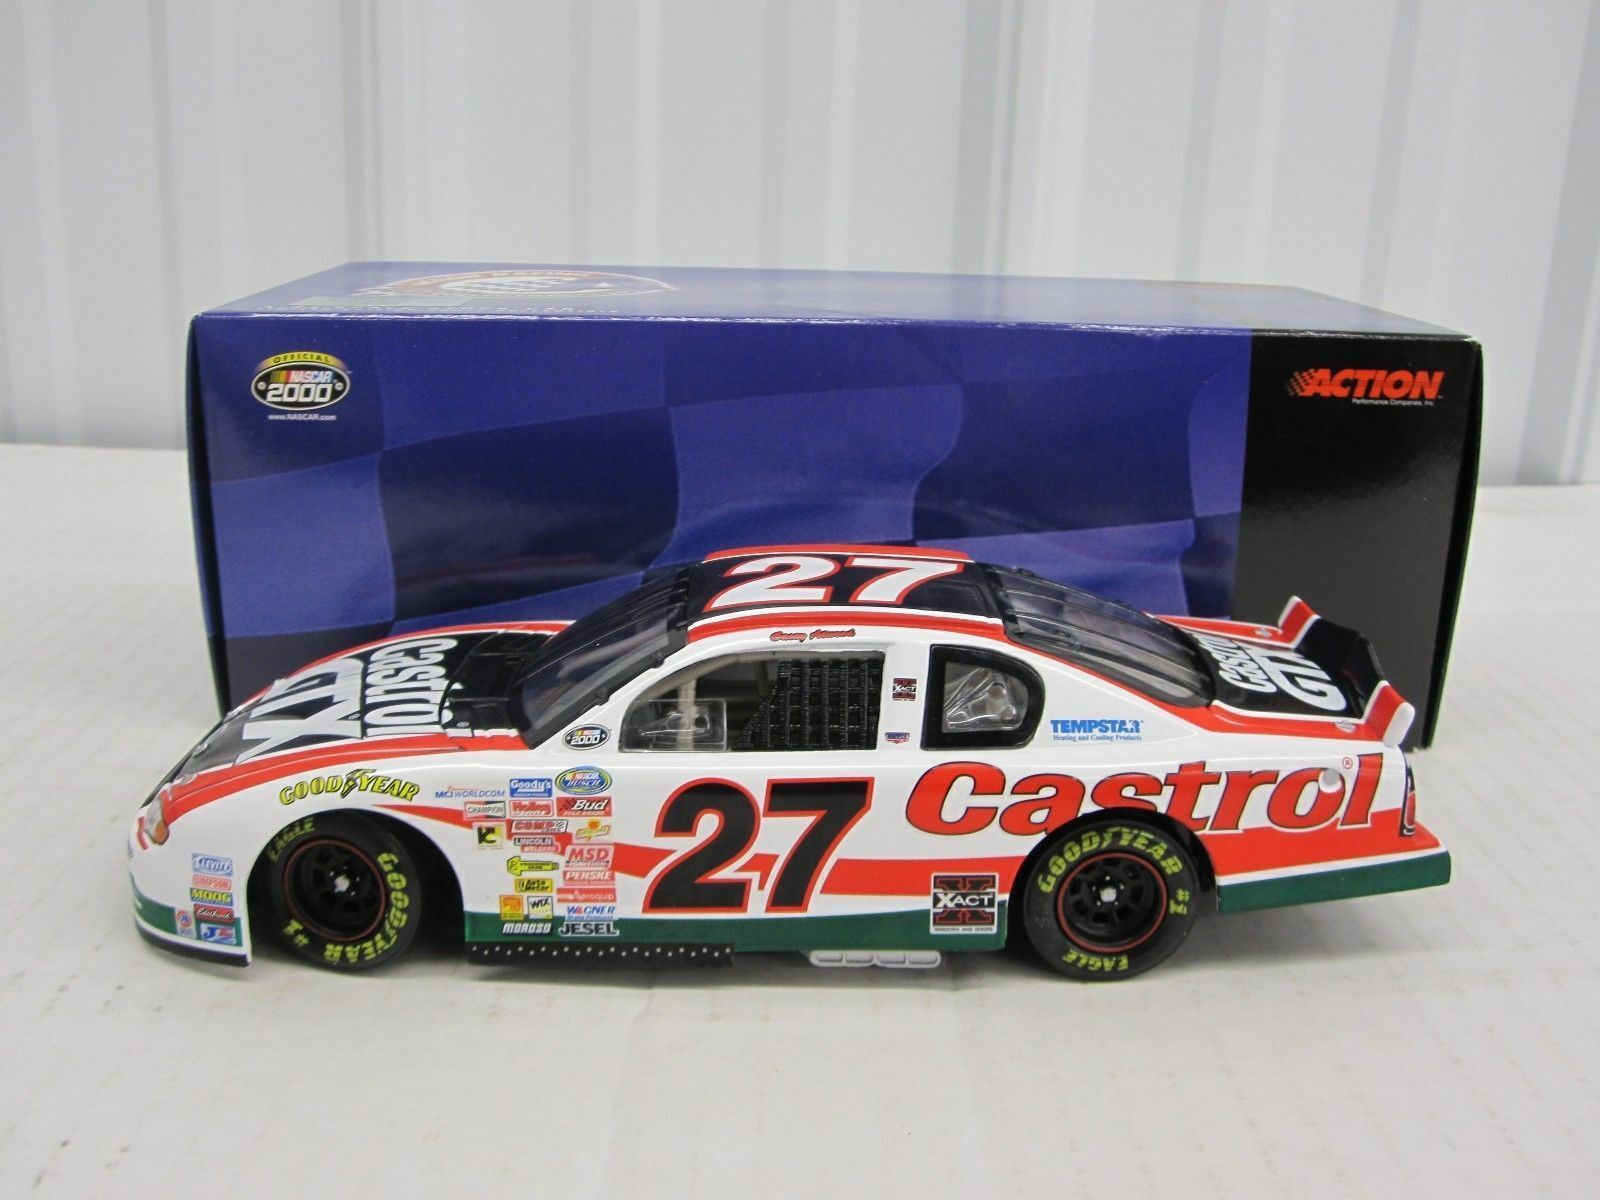 1 24 Action Nascar Casey Atwood Castrol 1999 Monte Carlo W249935555-1 NEW